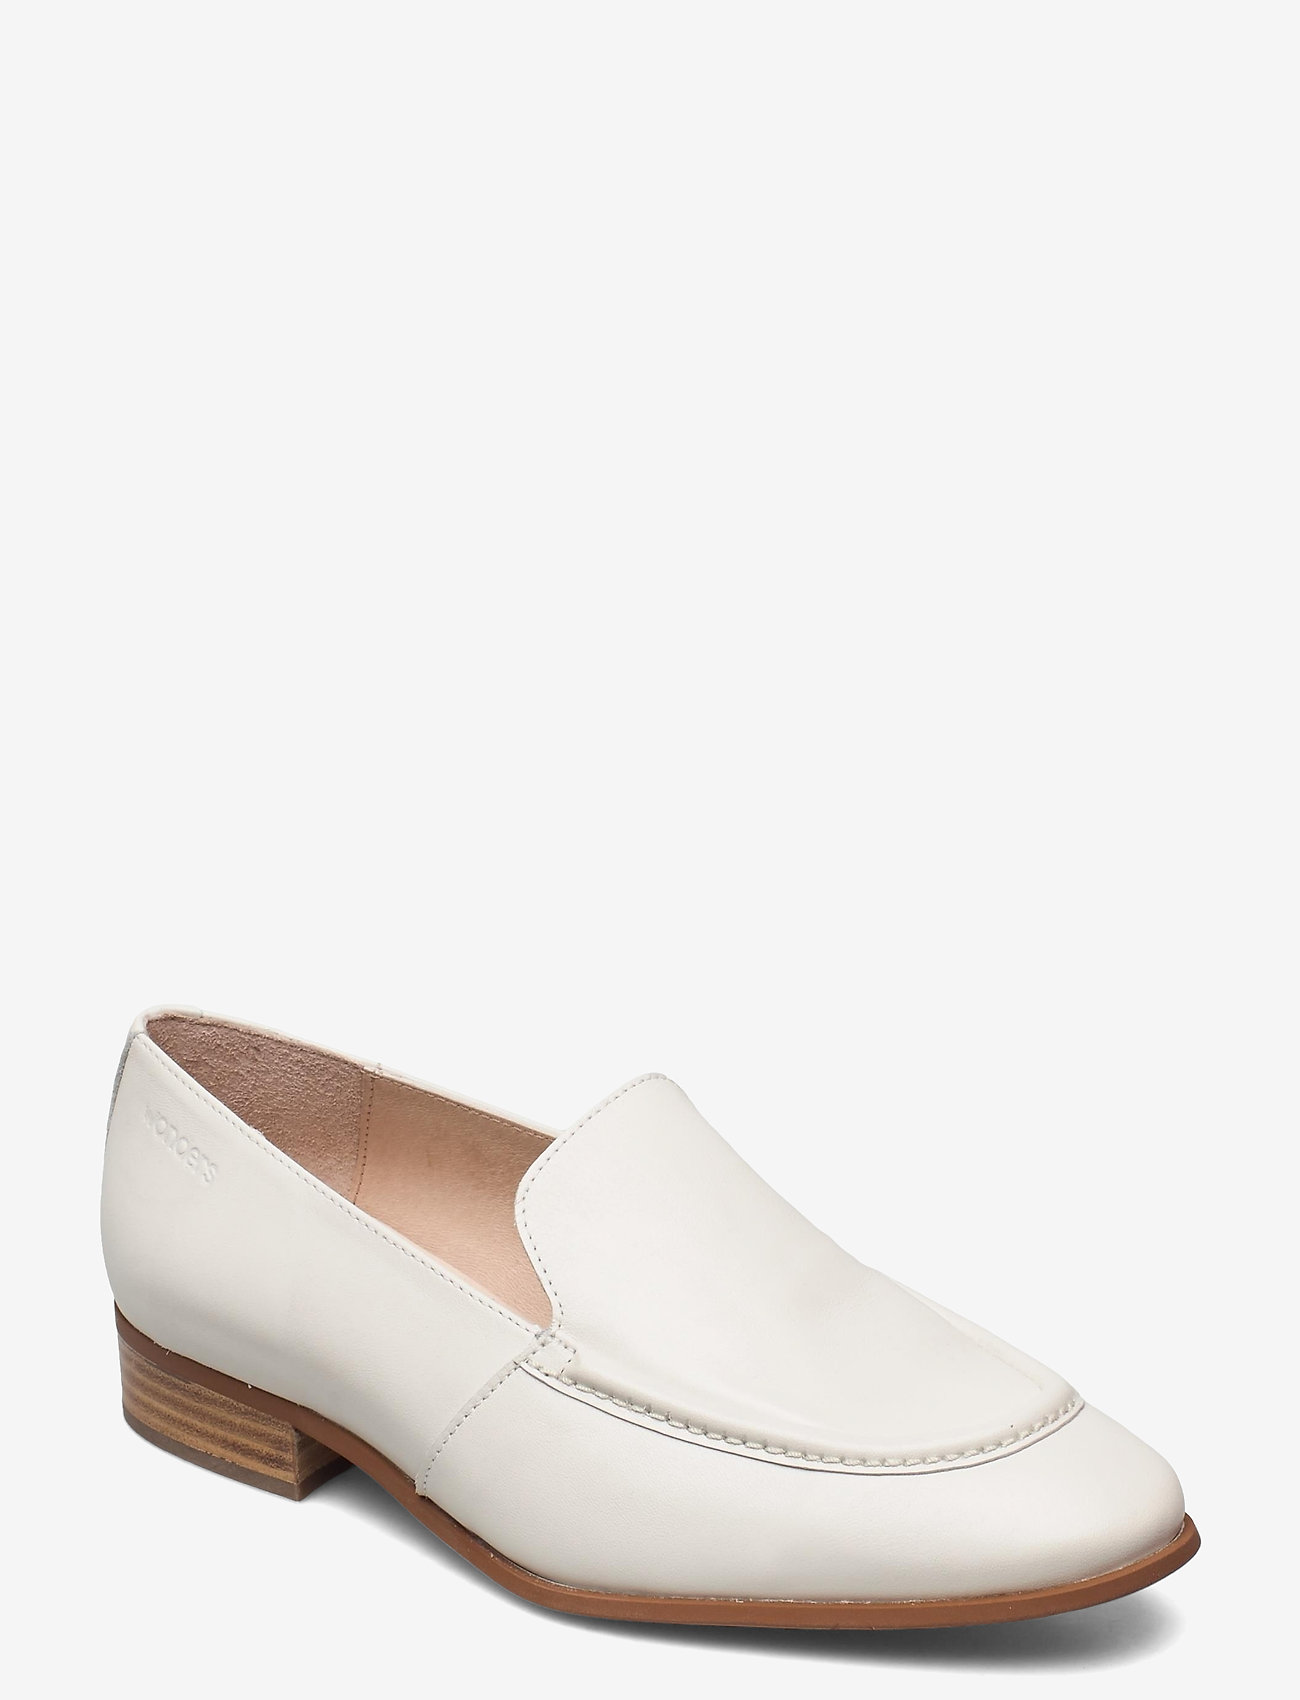 Wonders - B-7610 LACK - loafers - white - 0